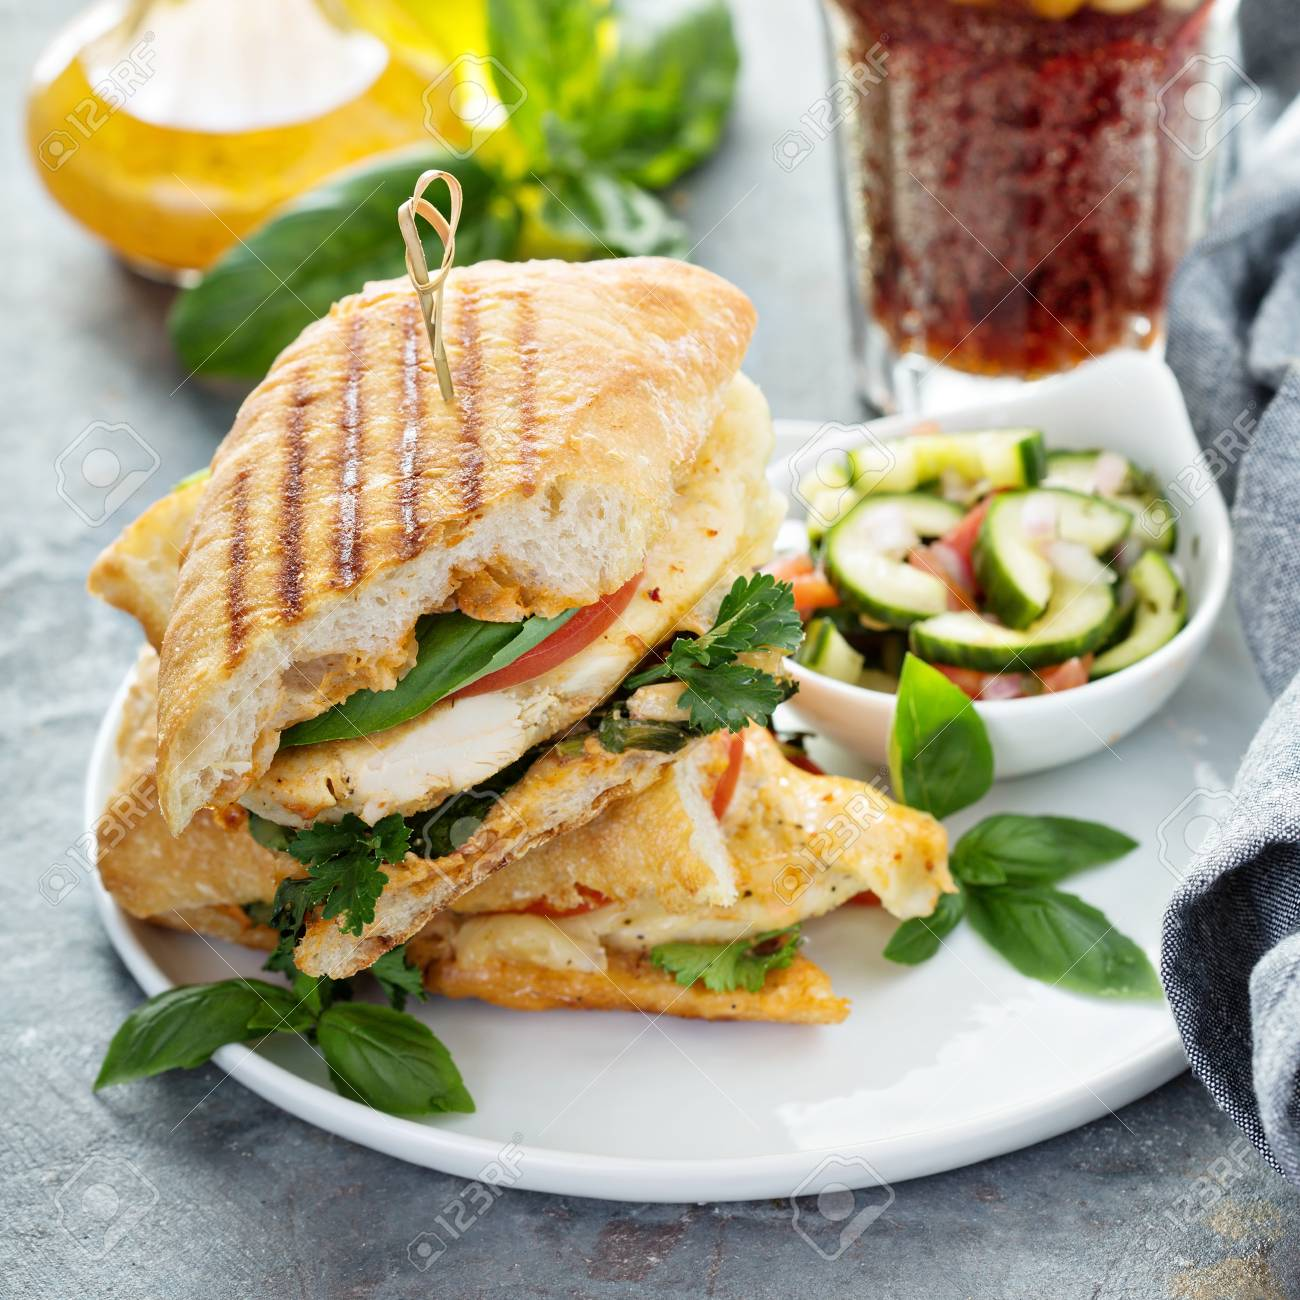 Grilled panini sandwich with chicken and cheese - 103968573